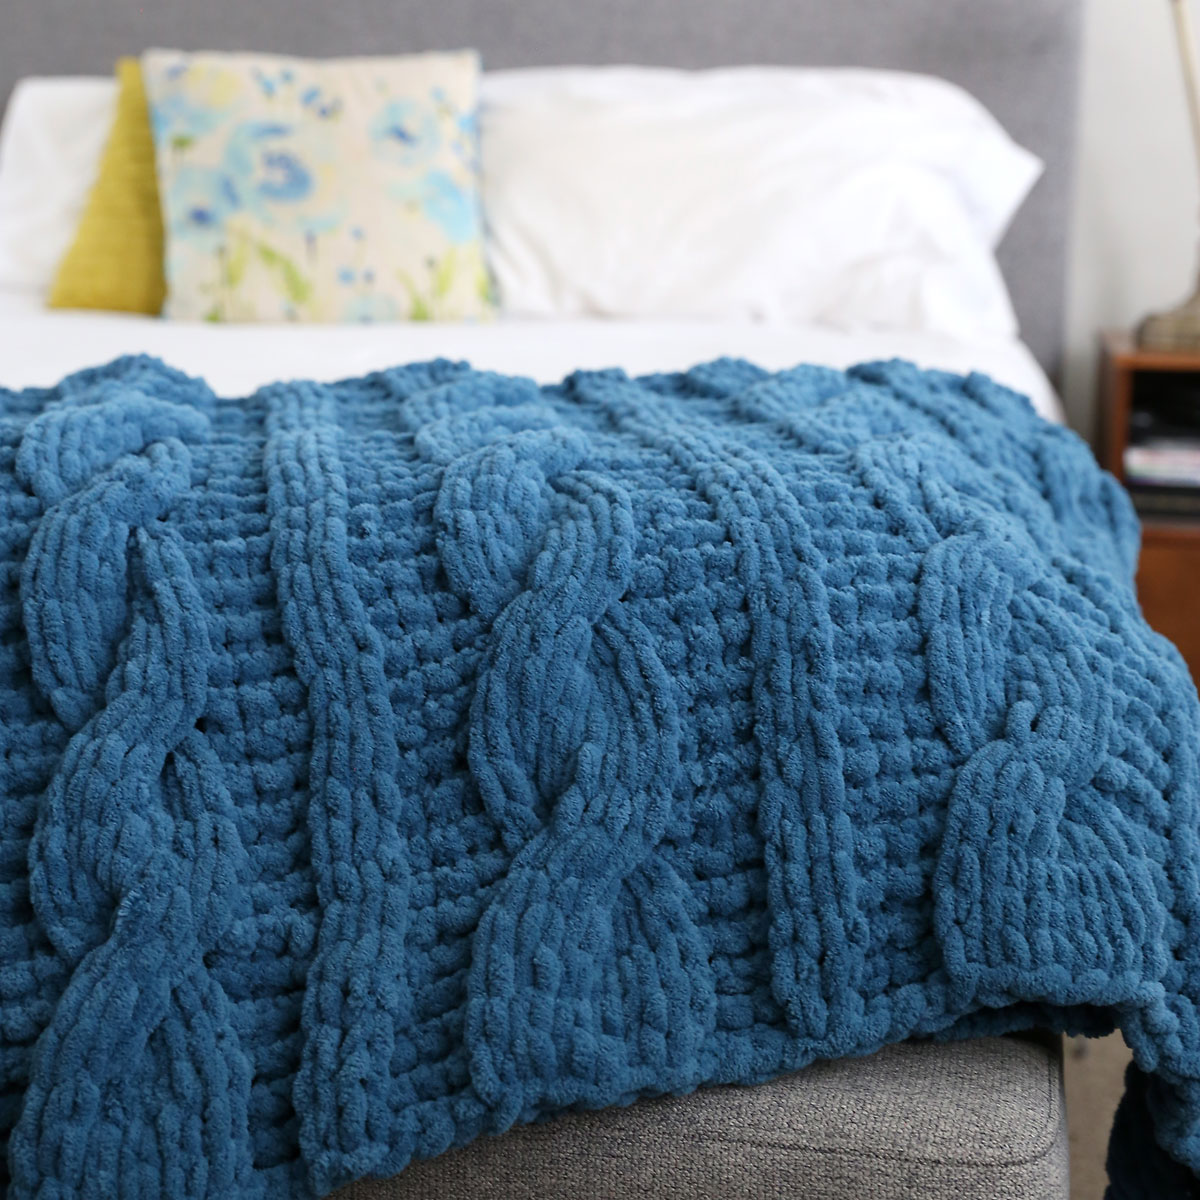 Blue handmade cable knit blanket on a bed